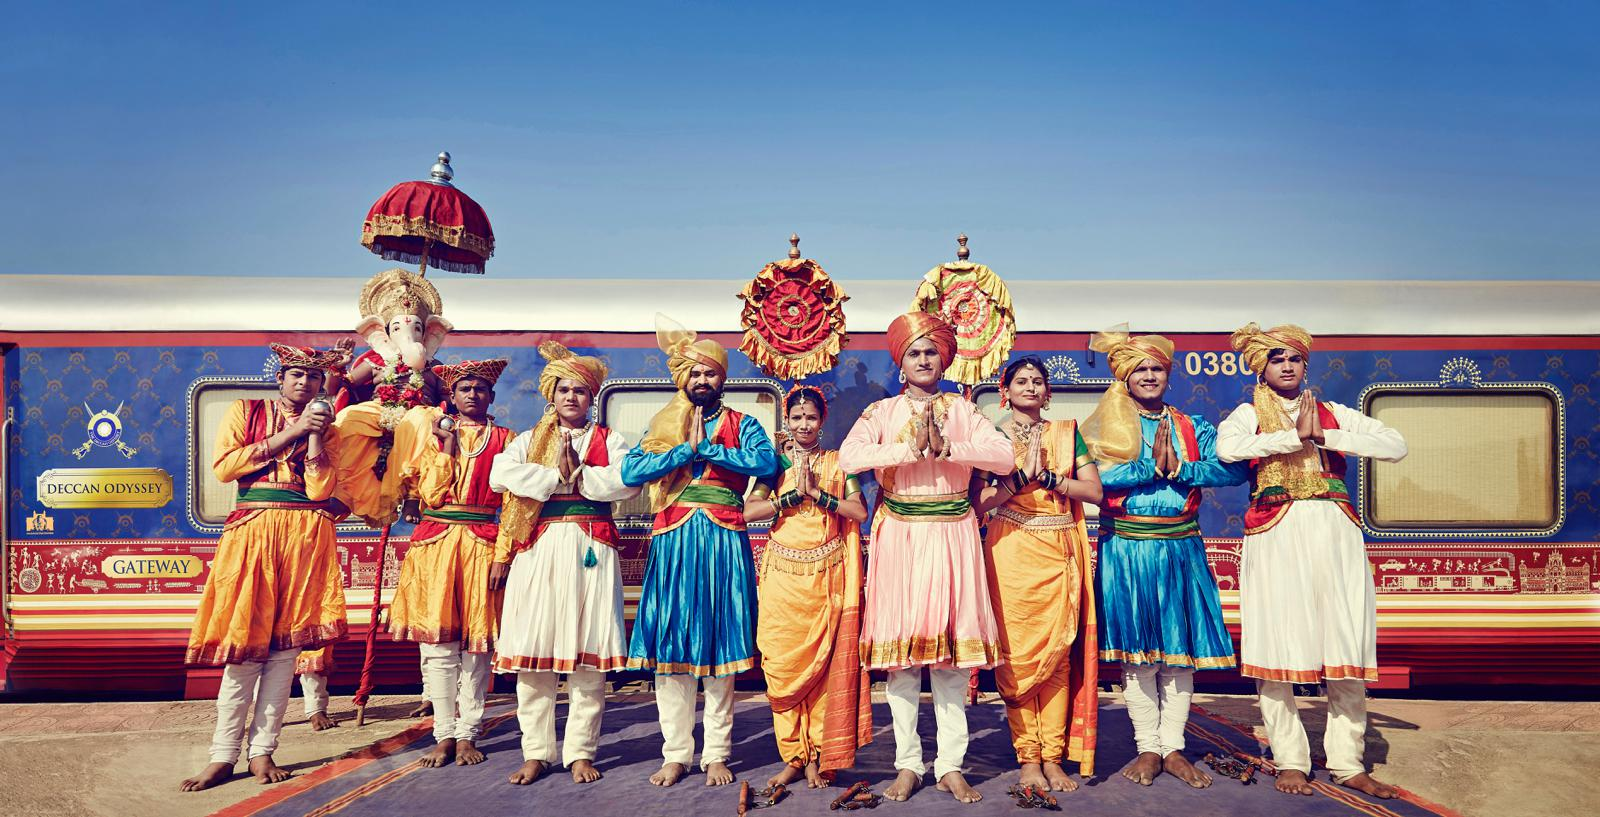 What to Expect from India's Deccan Odyssey